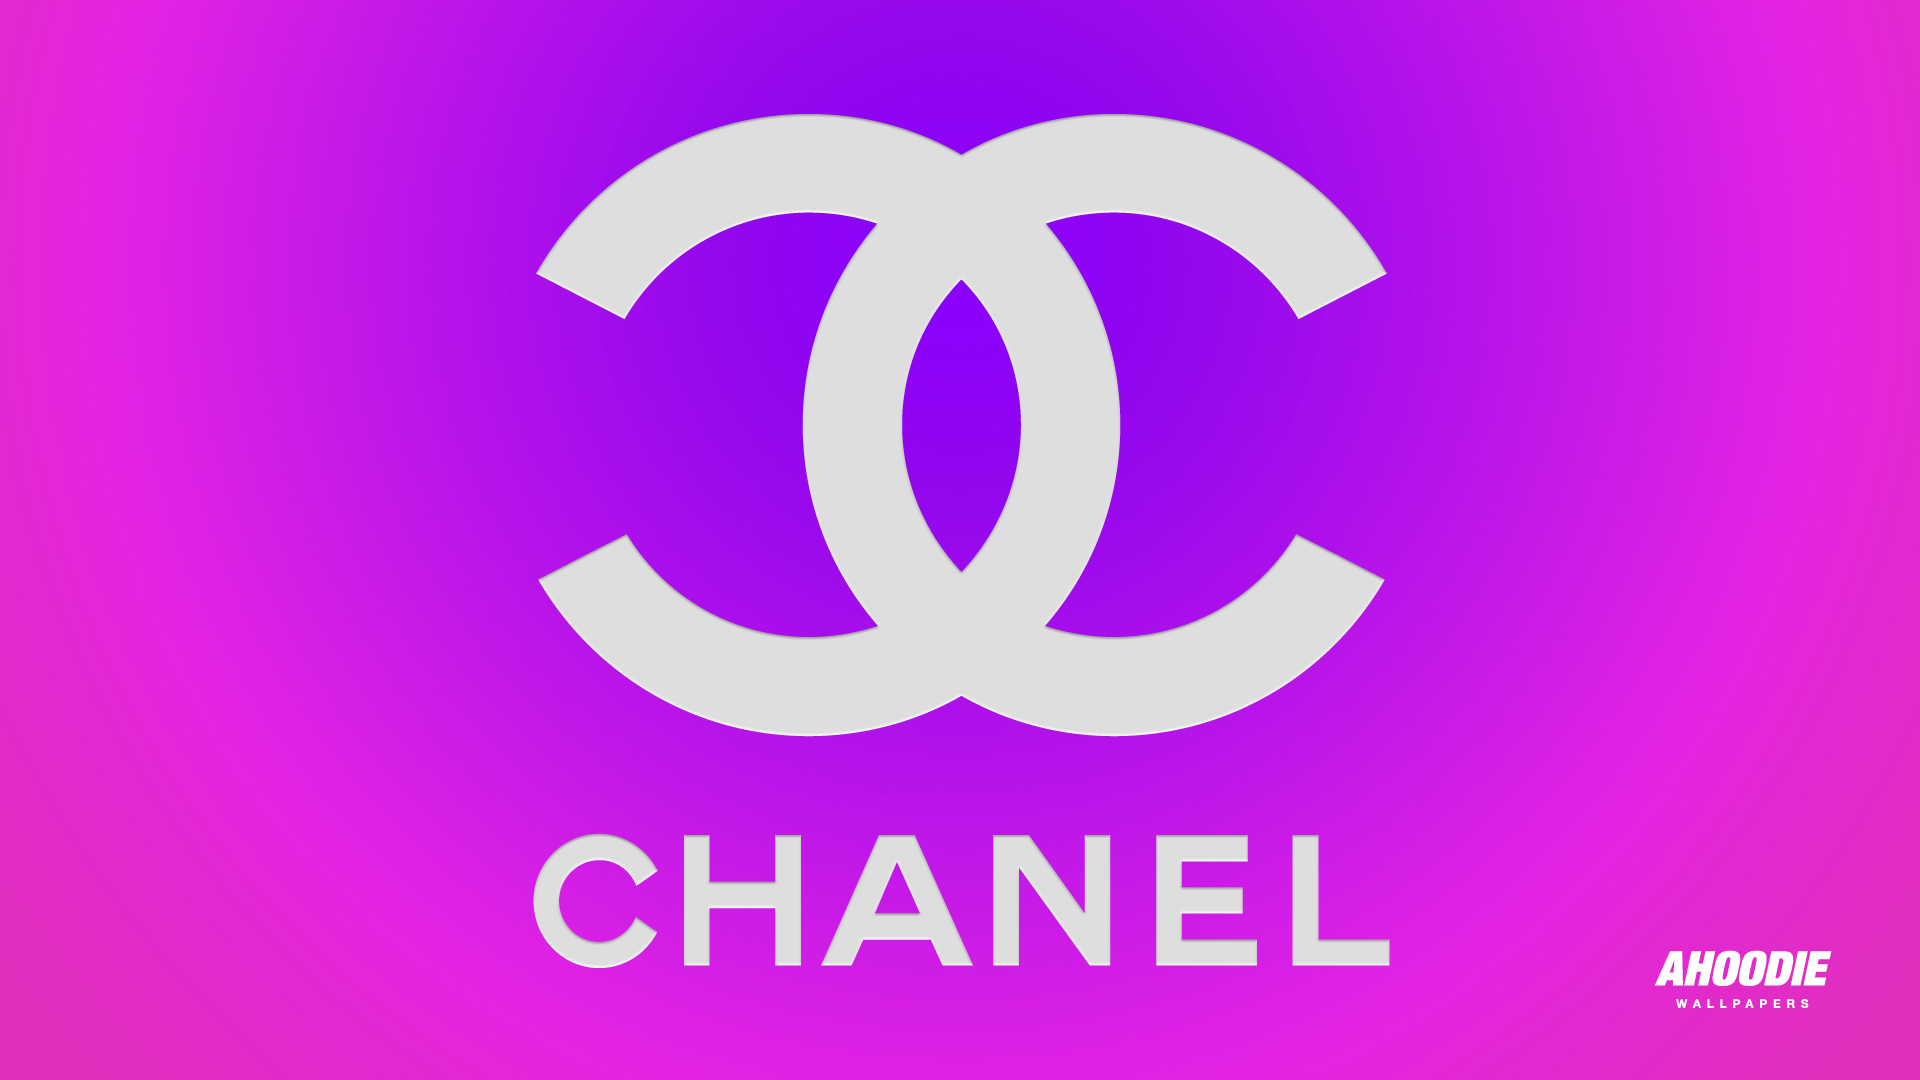 176 best chanel images on Pinterest | Chanel logo, Coco chanel and ...